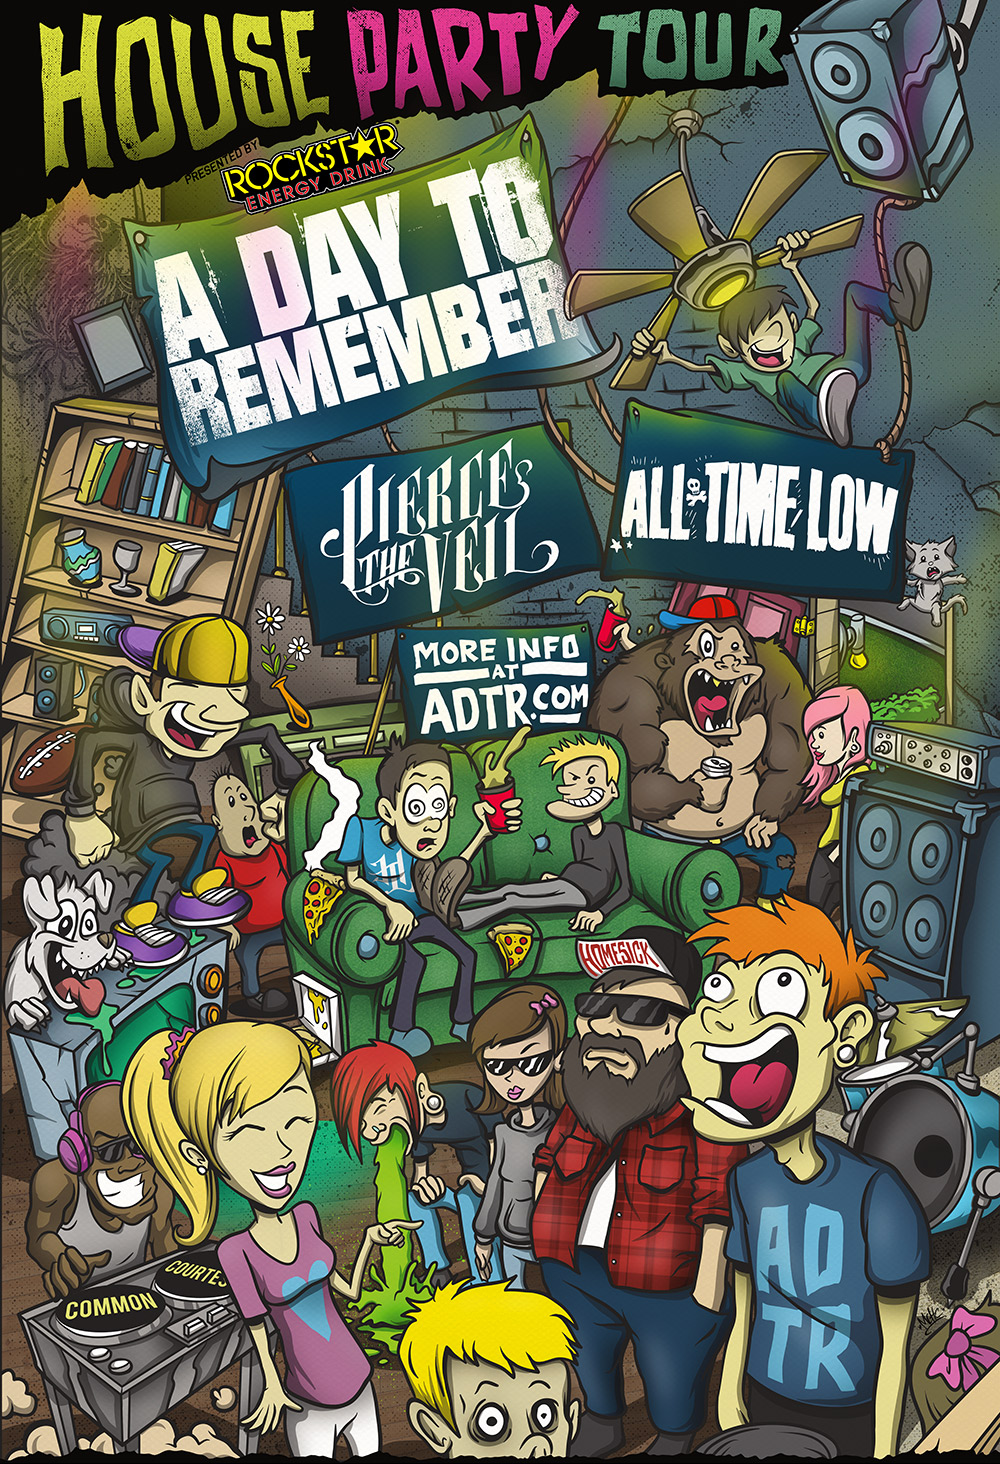 A day to remember tour dates